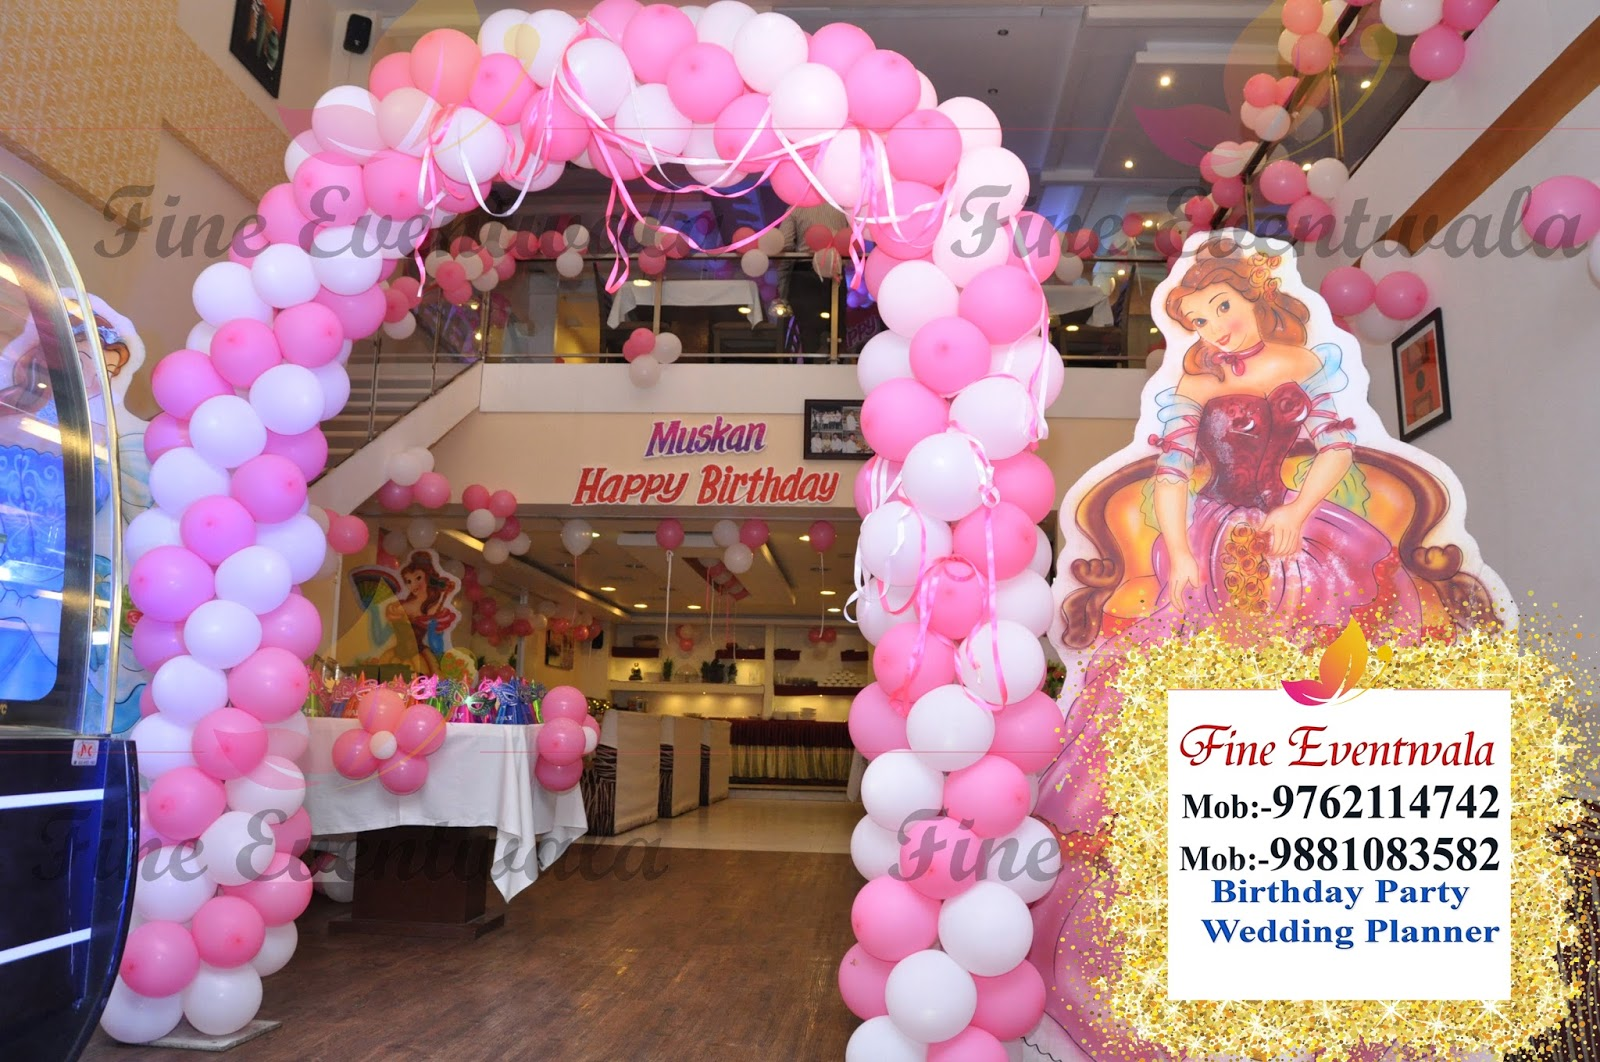 Wedding and Birthday Planner Birthday Party Balloon Decoration in Pune